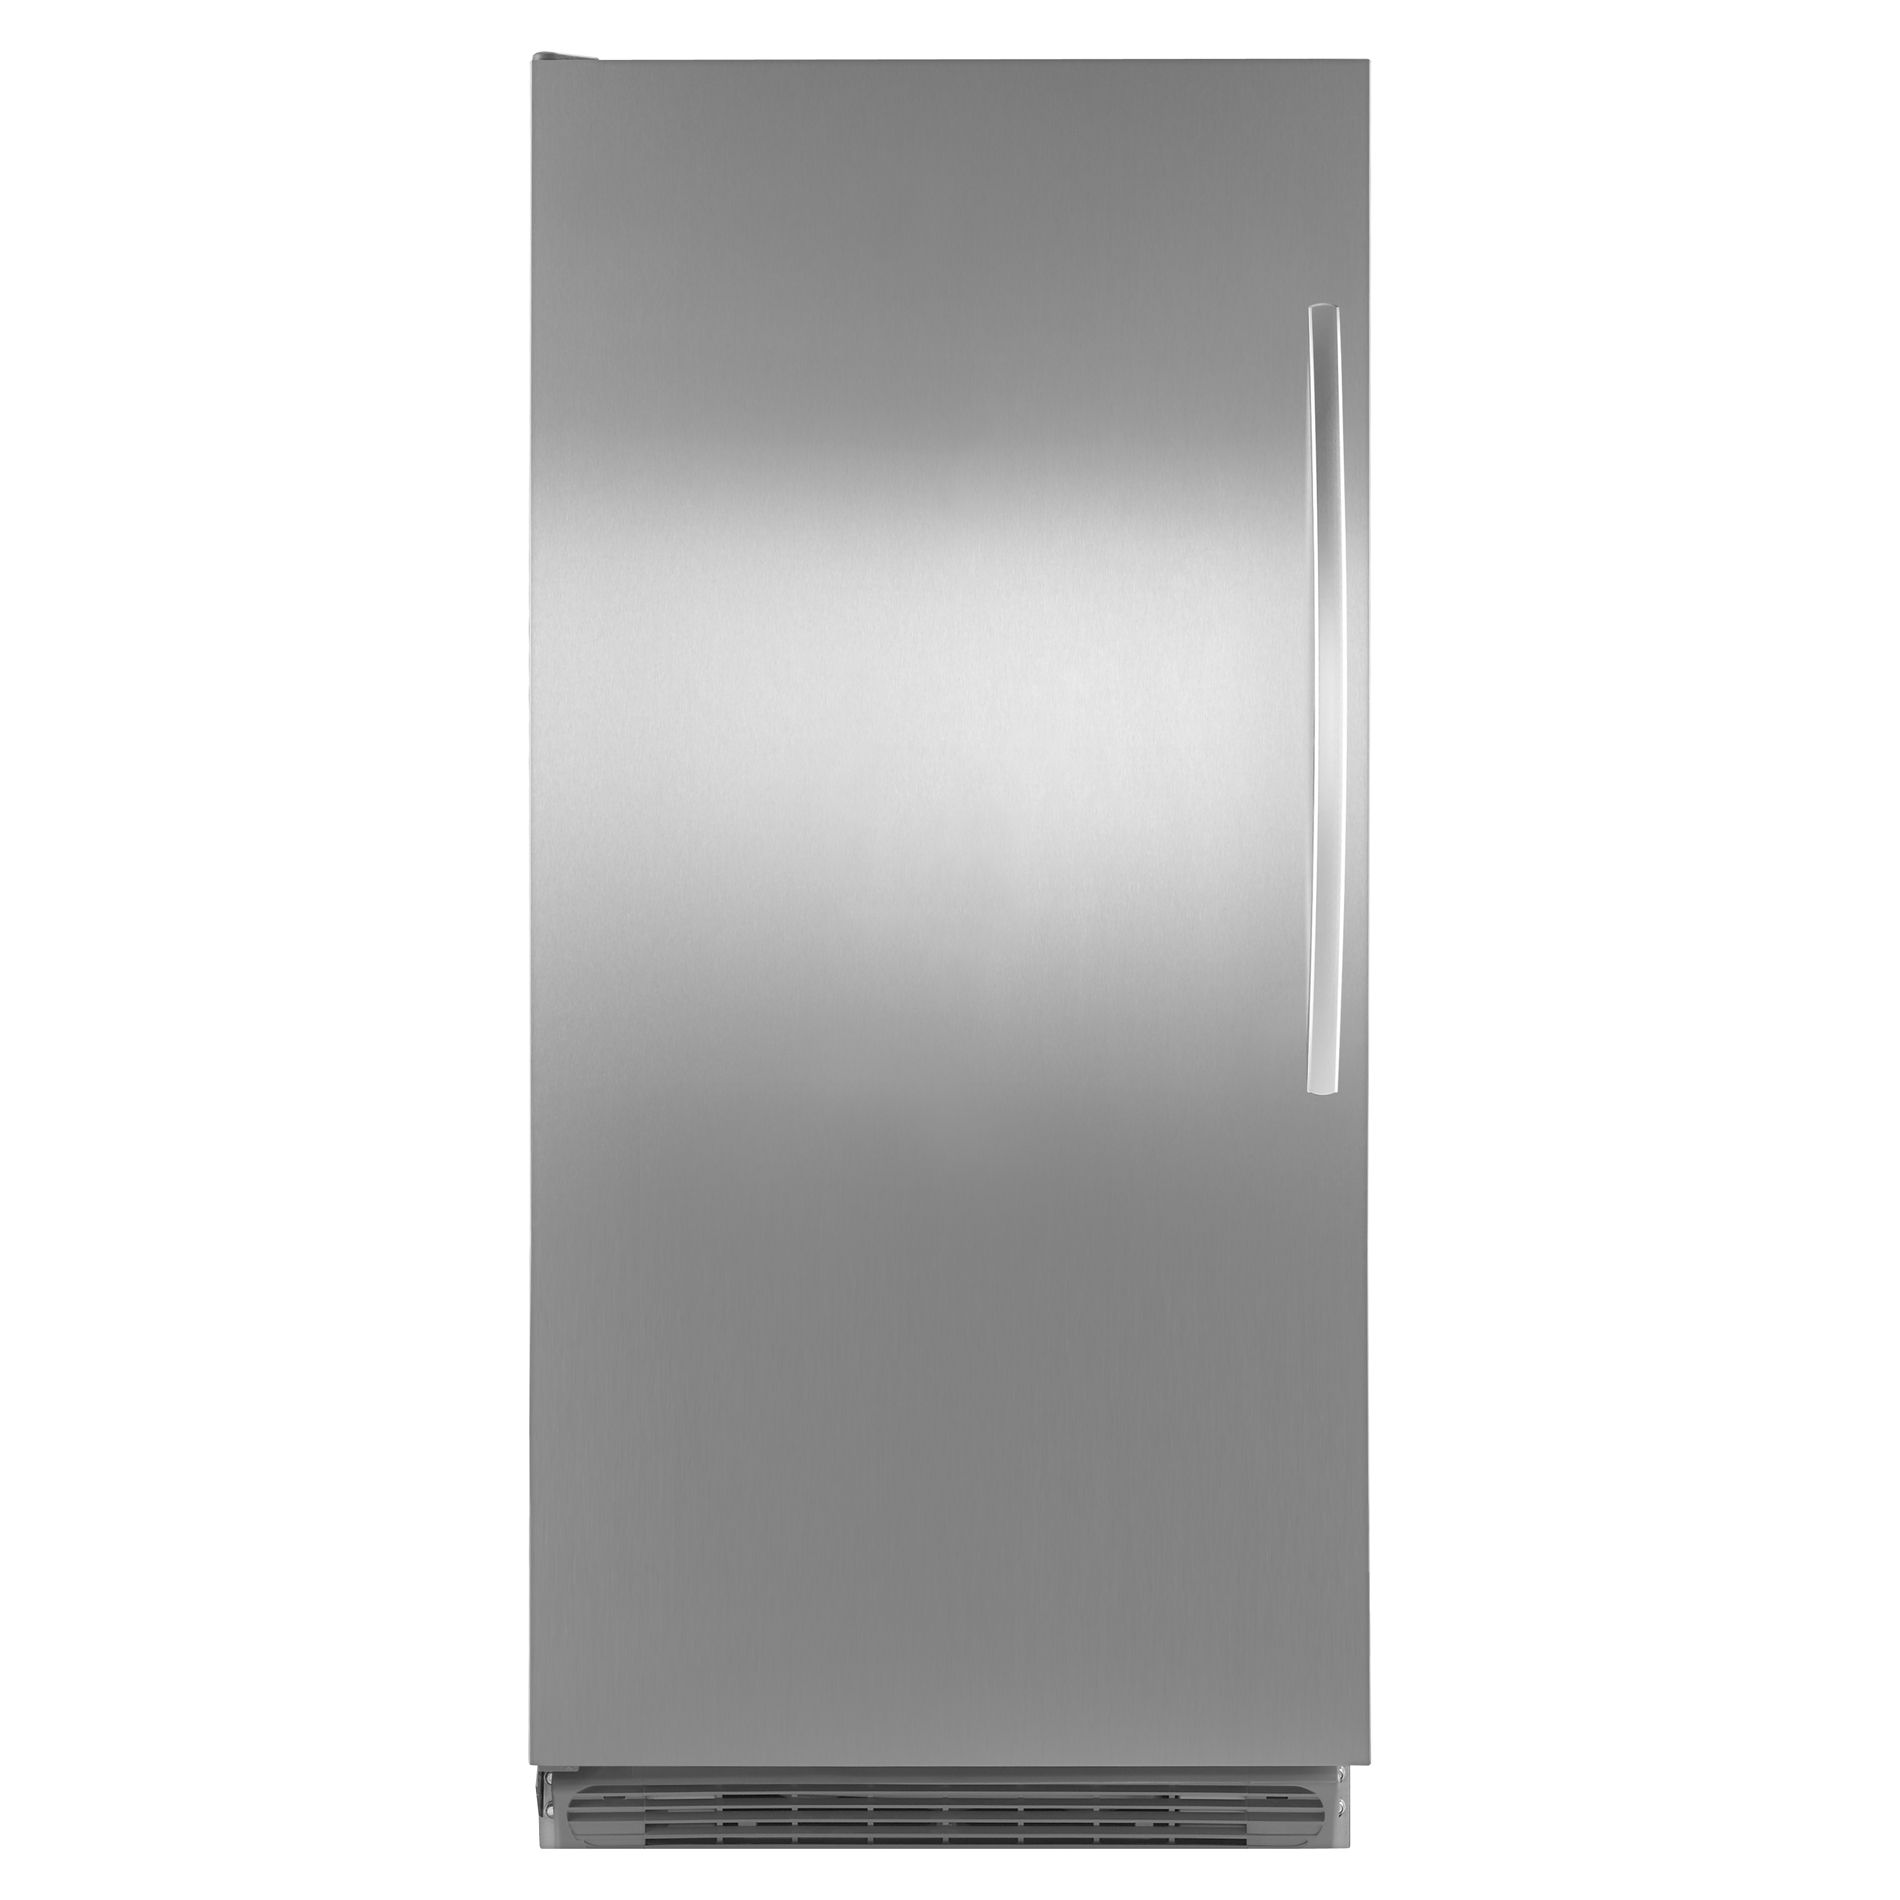 17.7 cu. ft. Upright Freezer - Stainless Steel